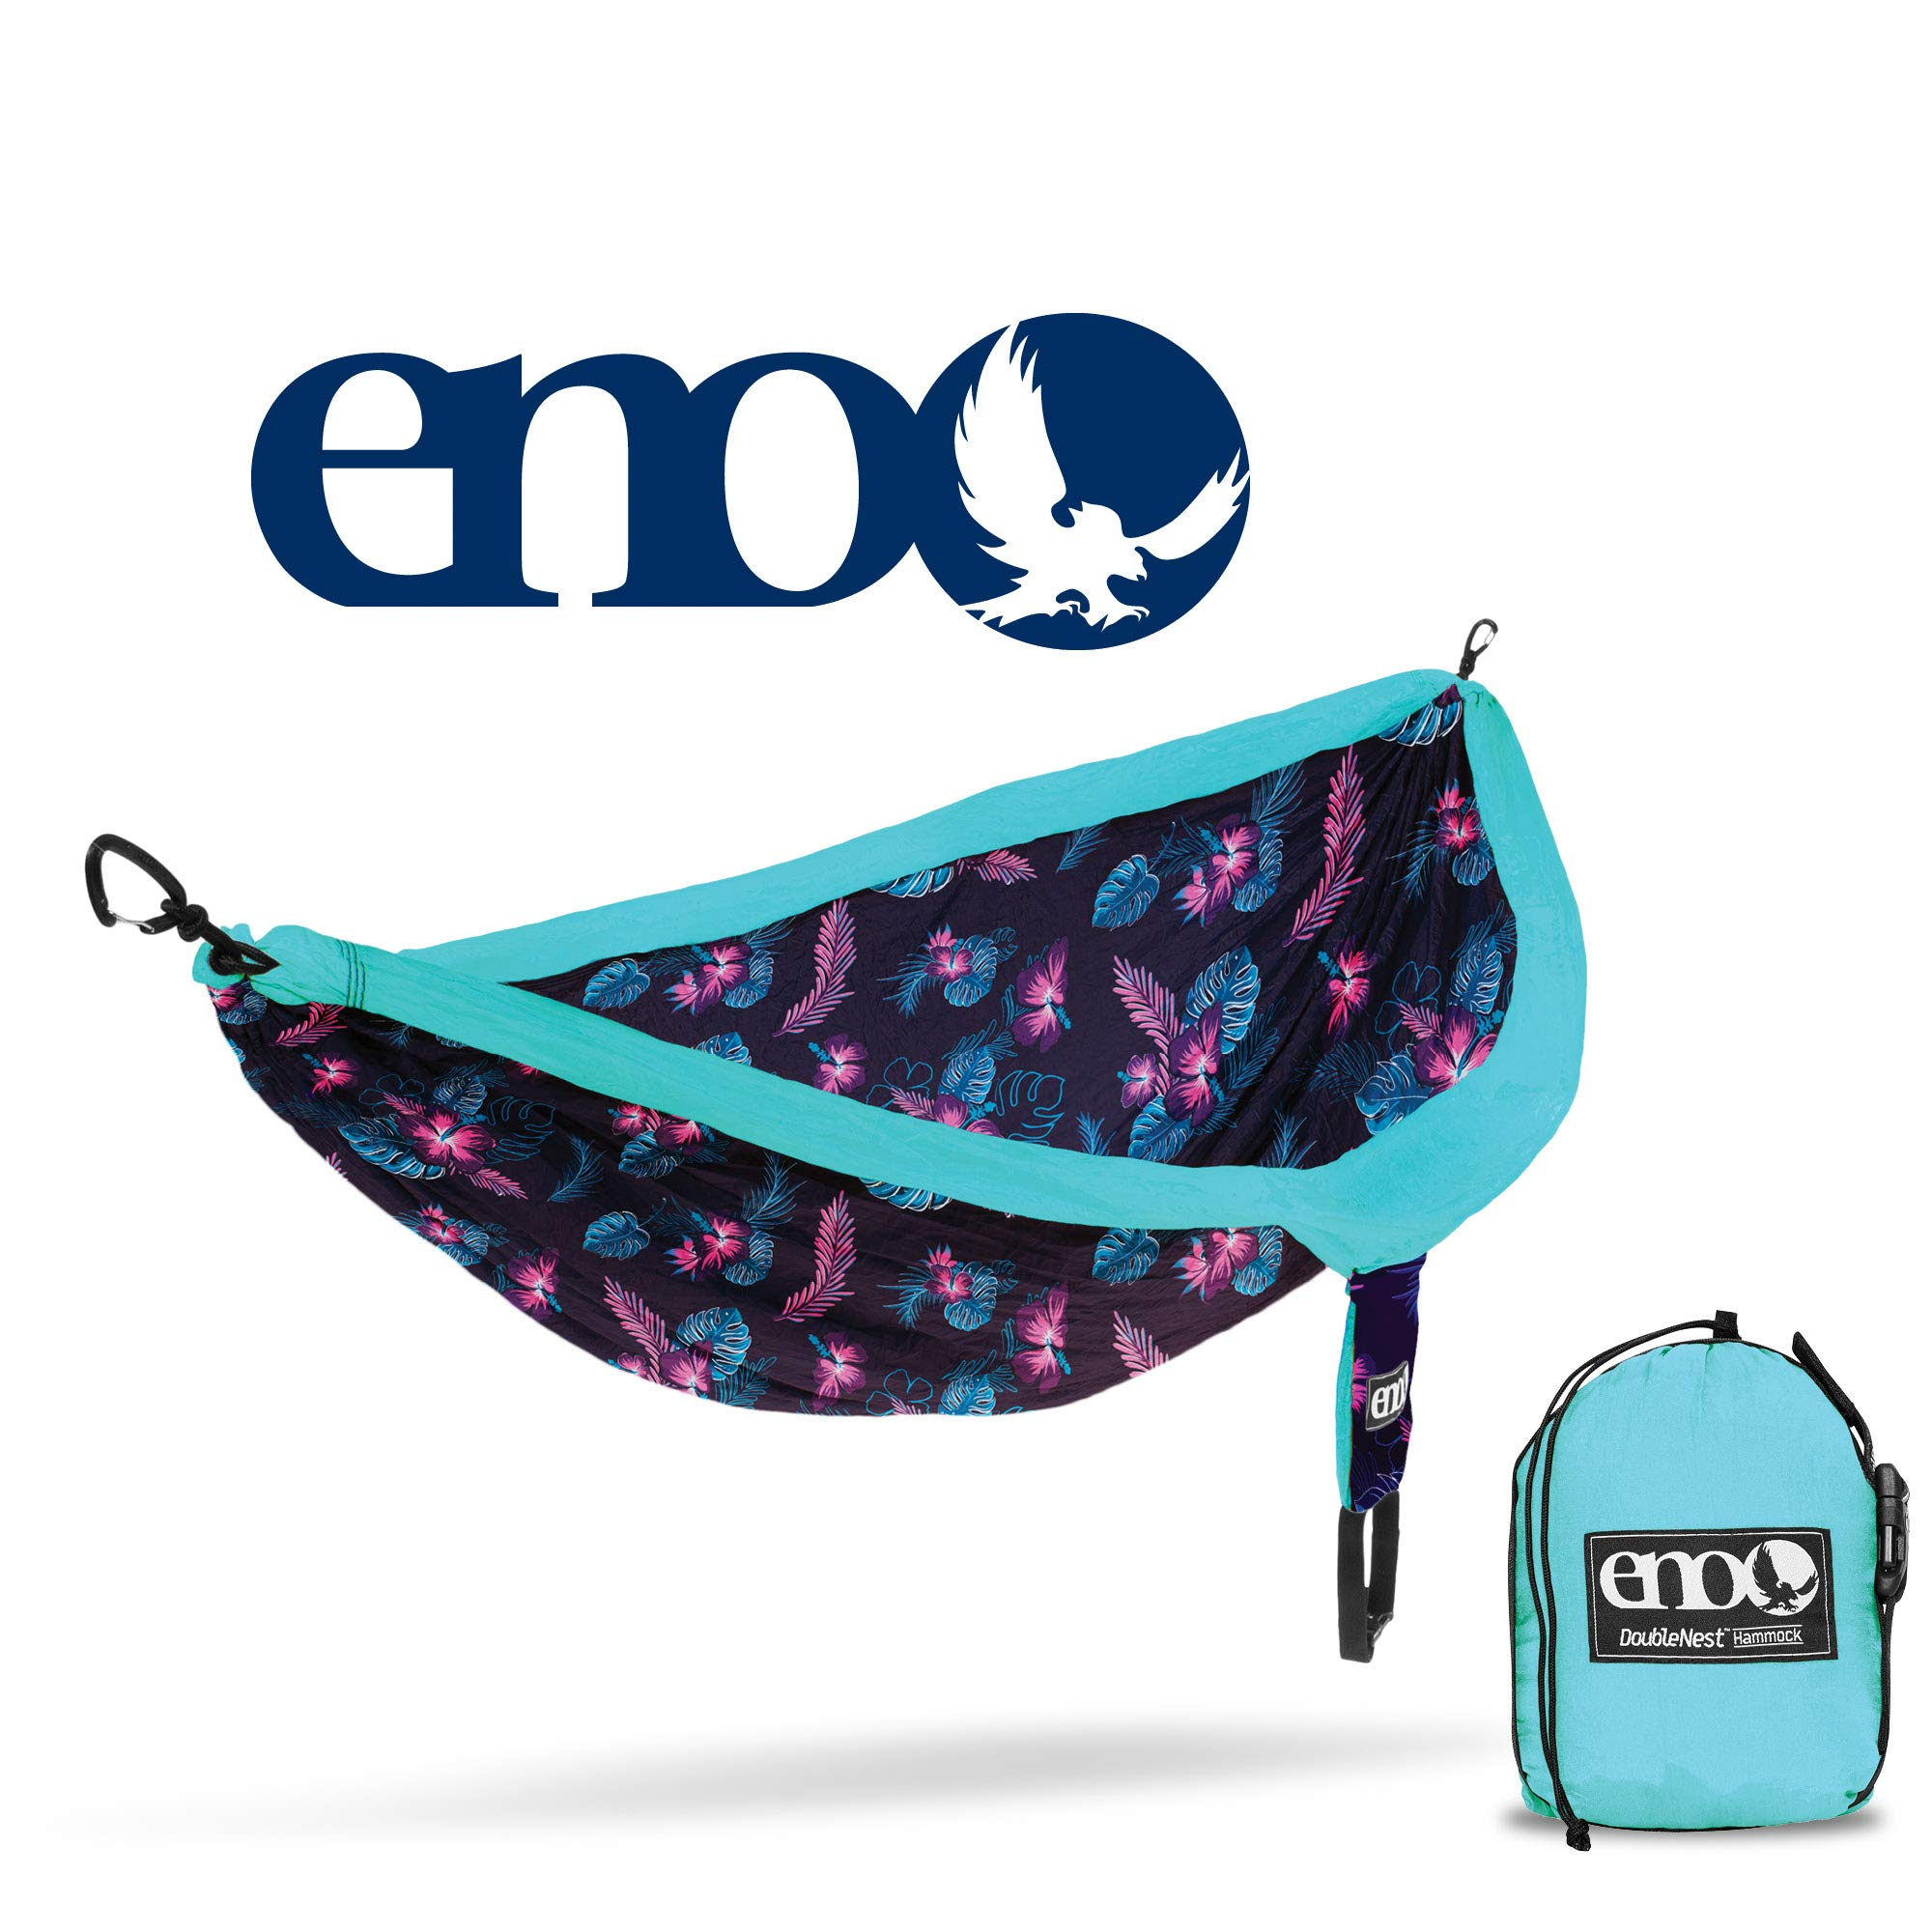 ENO - Eagles Nest Outfitters DoubleNest Print Portable Hammock for Two, Blue Aloha